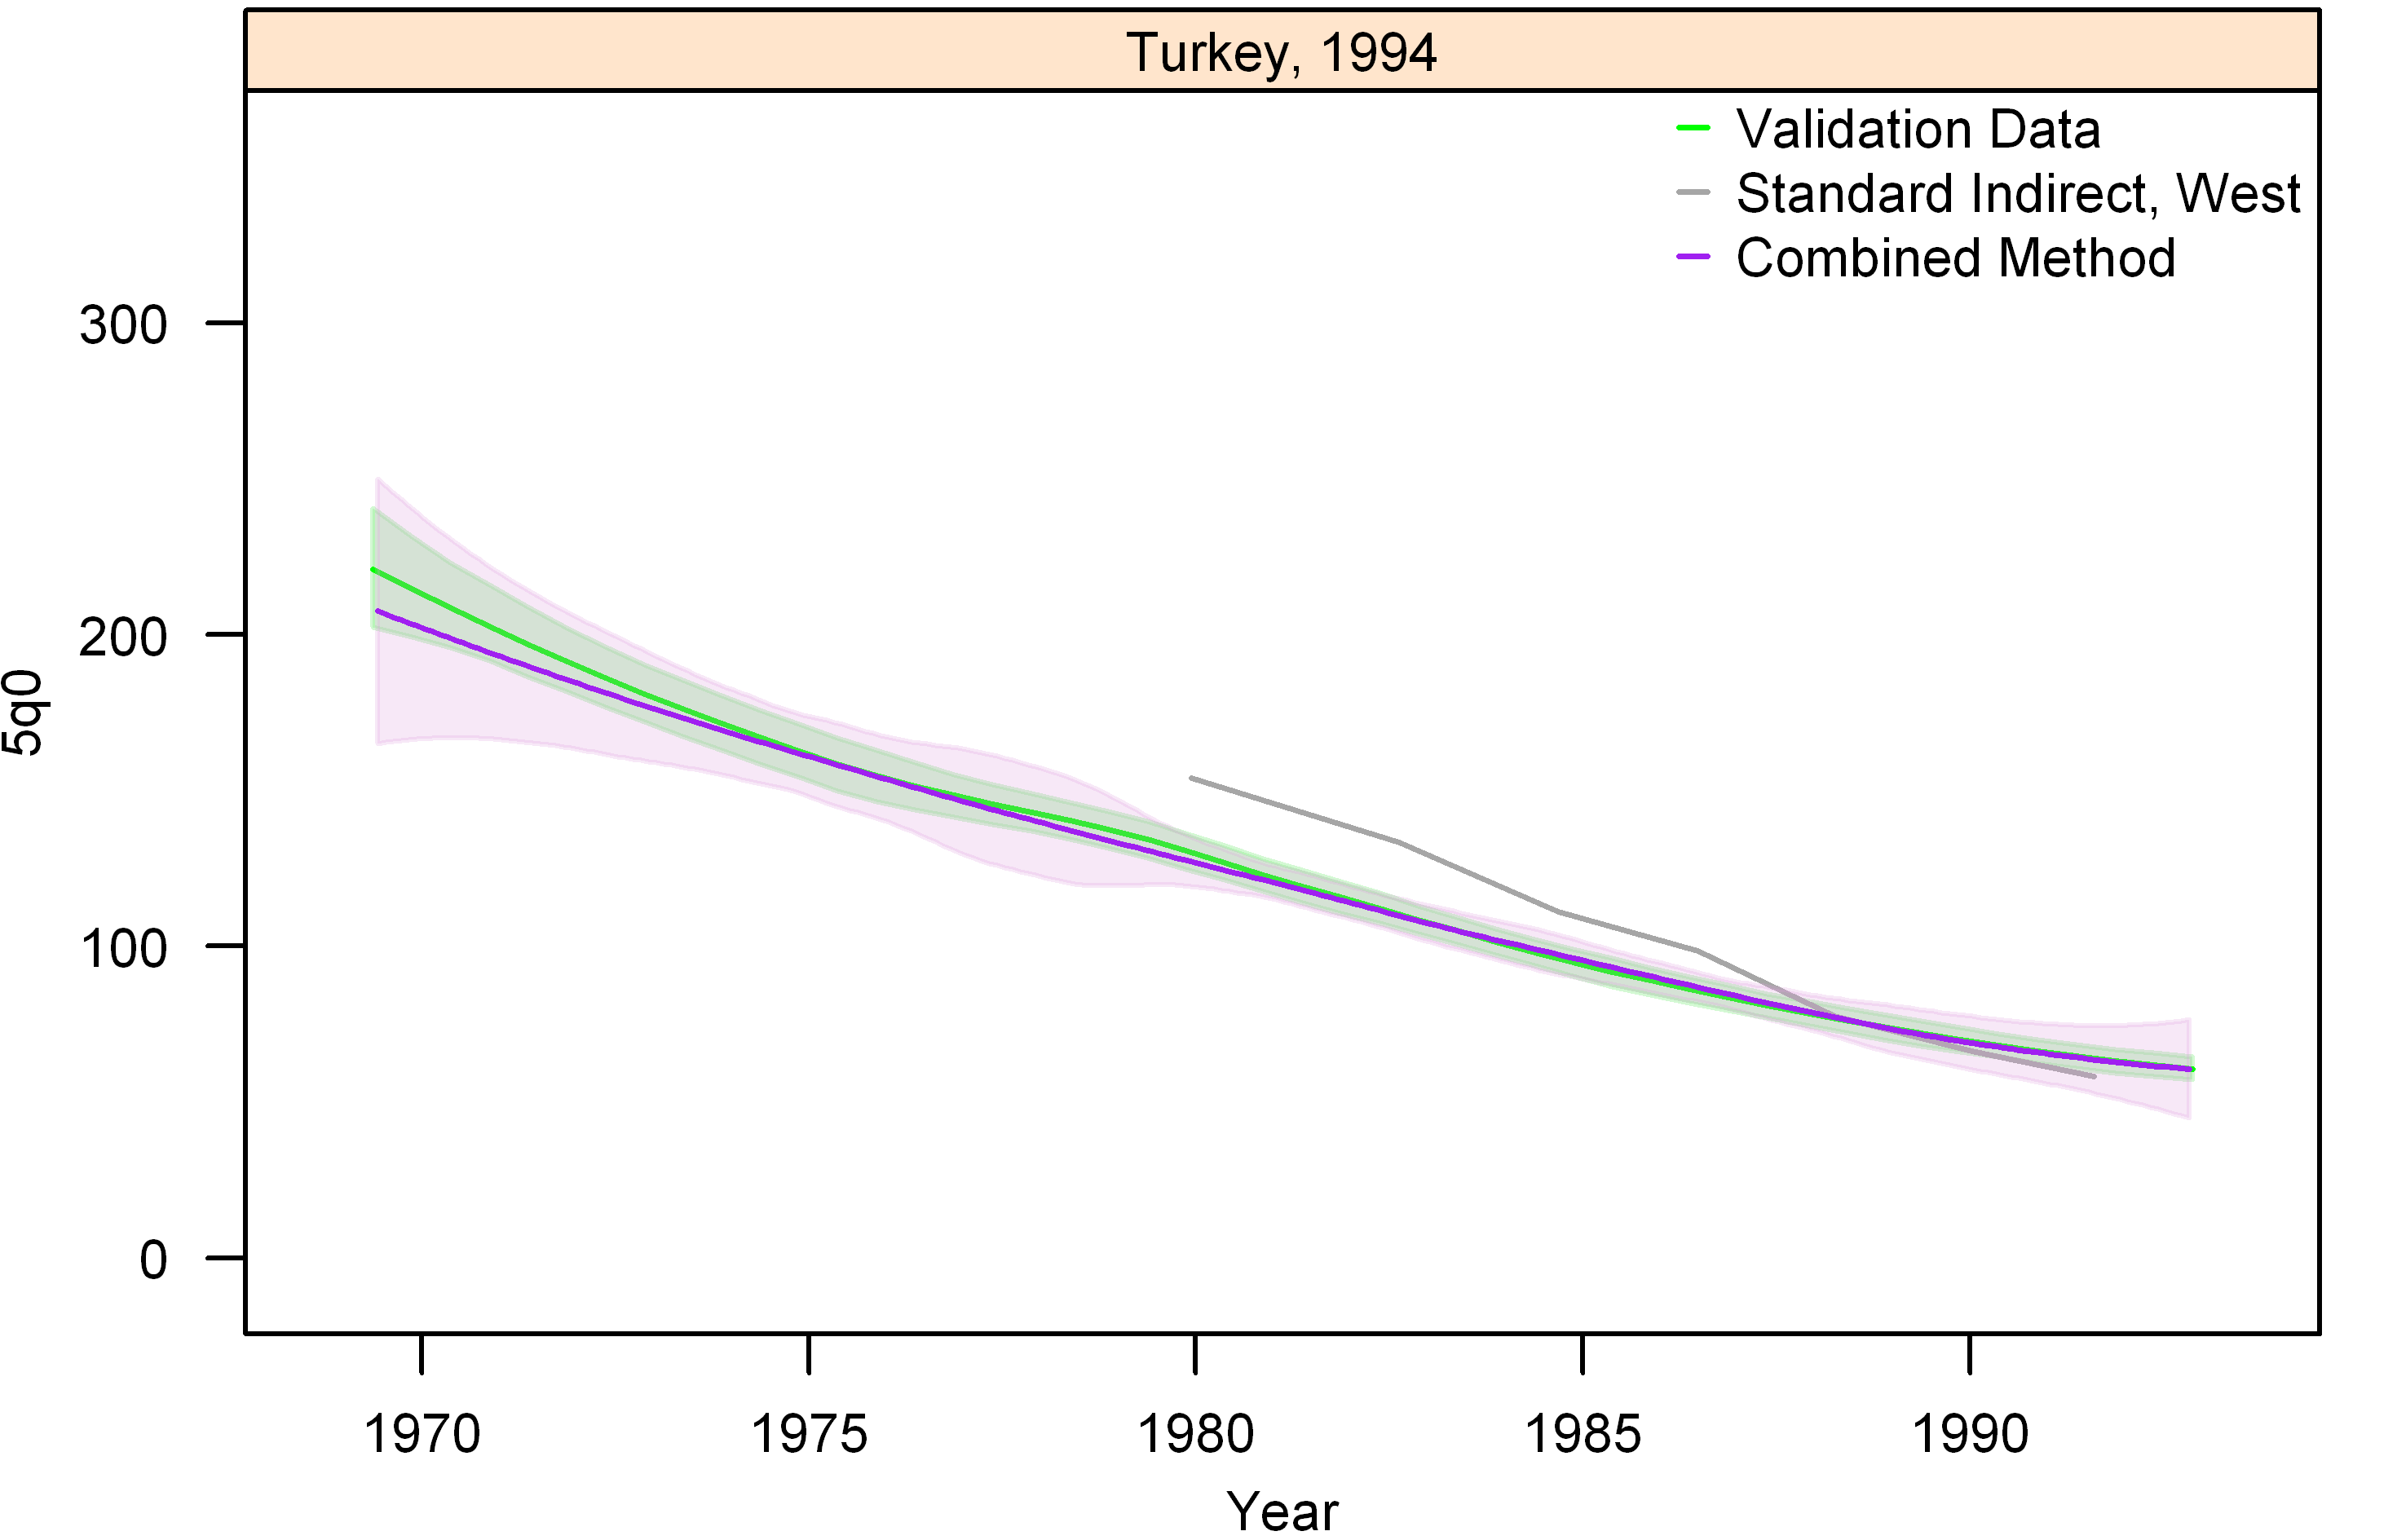 Graphs of estimates from summary birth histories using the best-performing combined method and the standard indirect (West) method. Section I, Turkey, 1994.